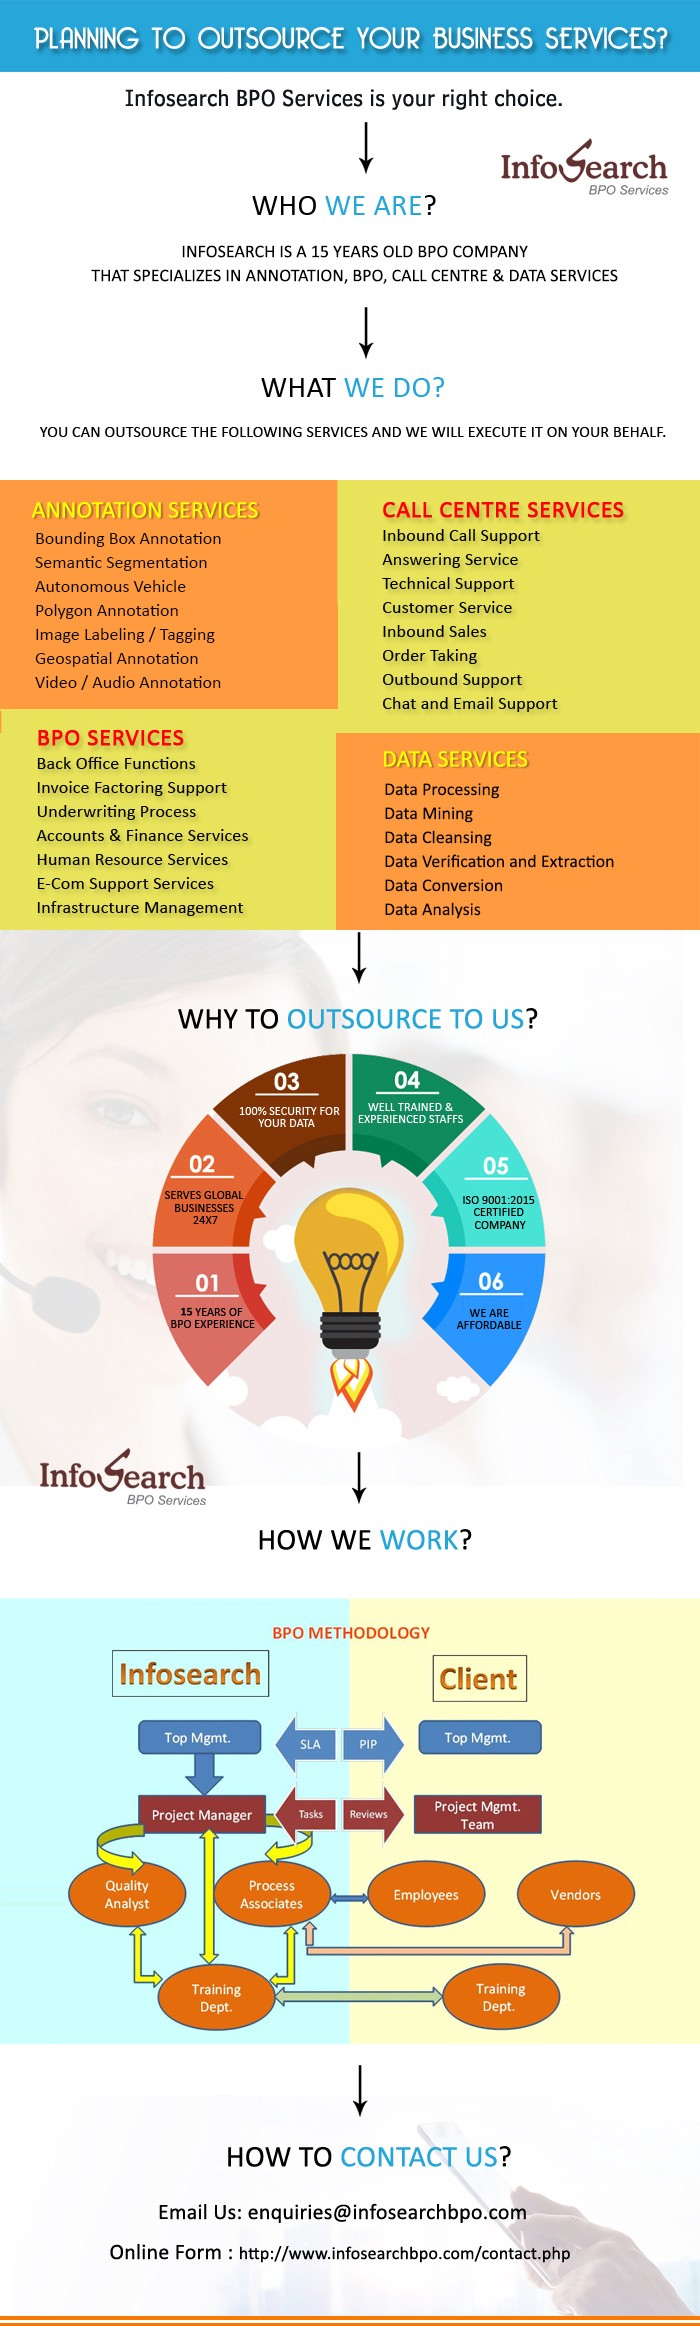 Outsource your business services to Infosearch BPO.